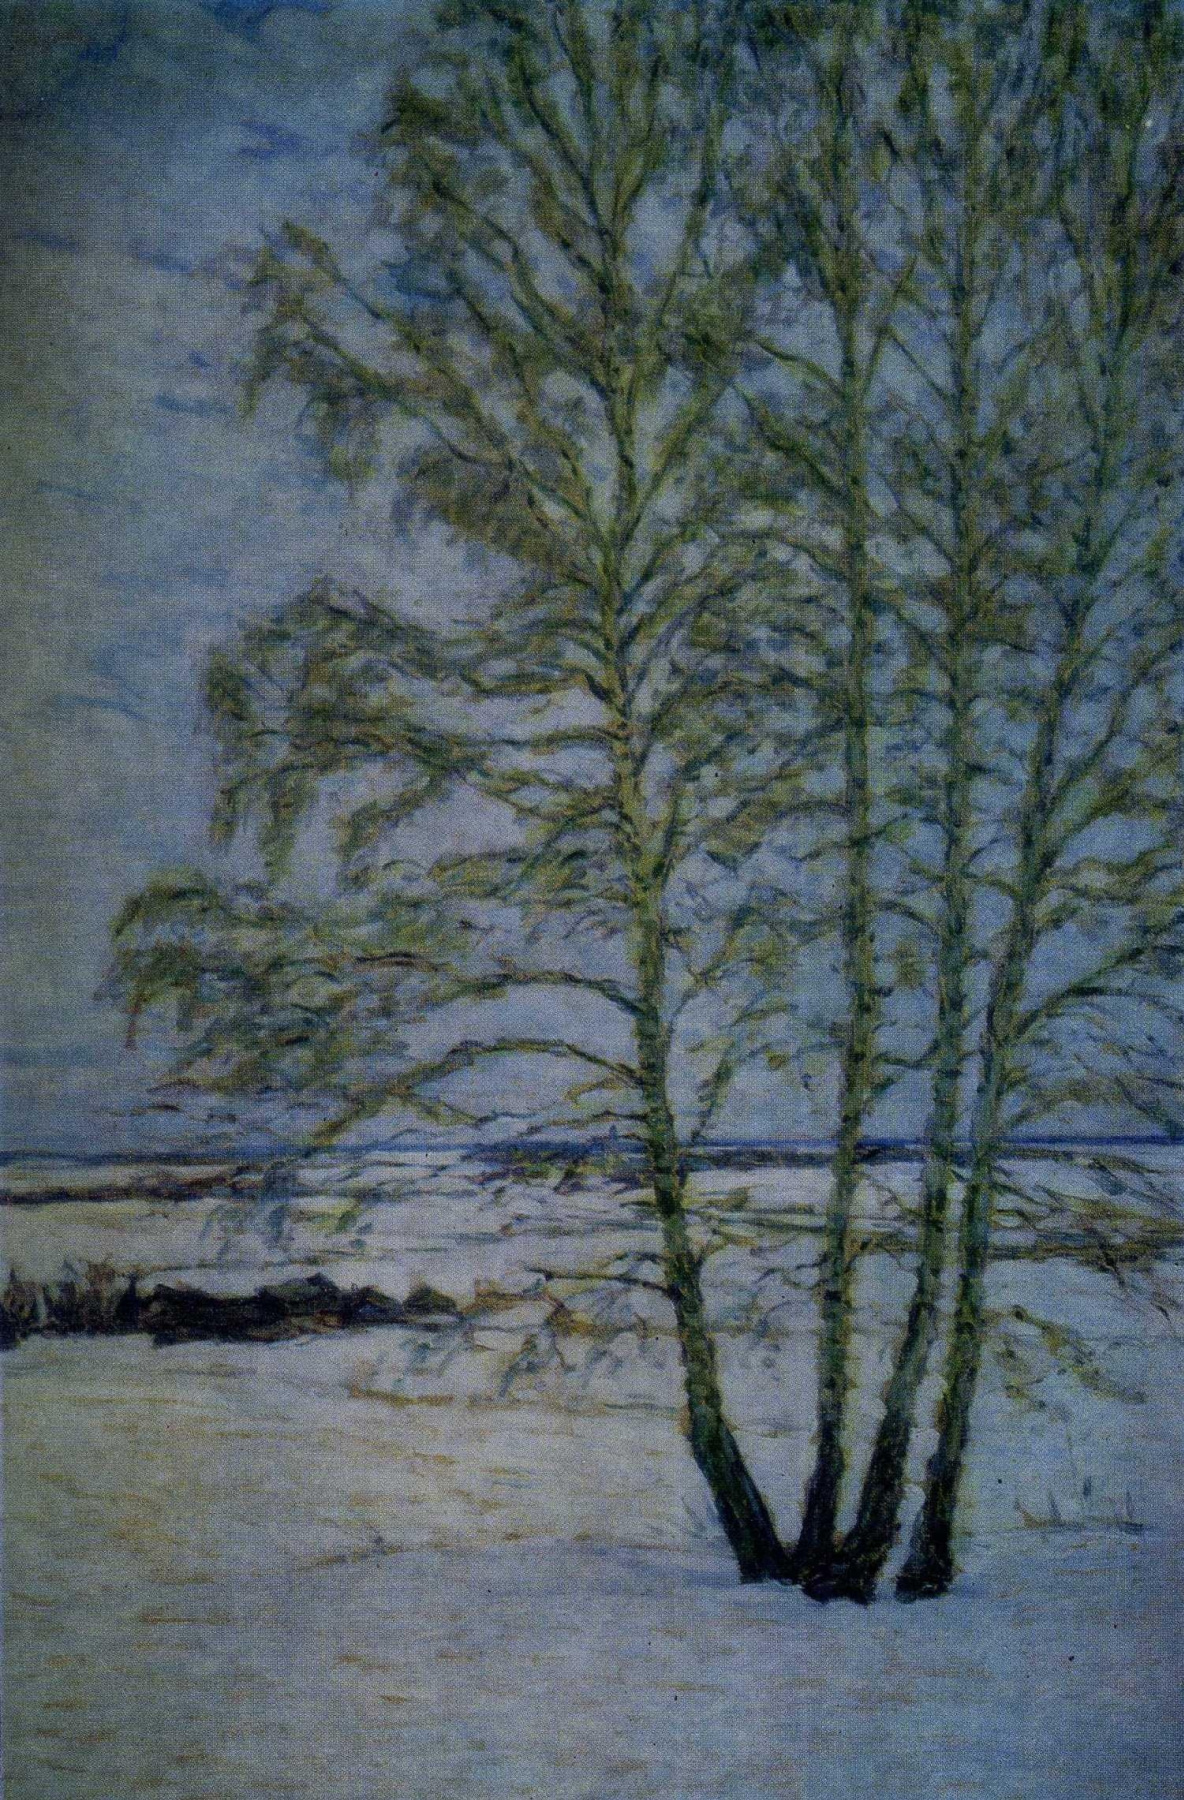 Nikolay Vasilyevich Mescherin. Thaw. February